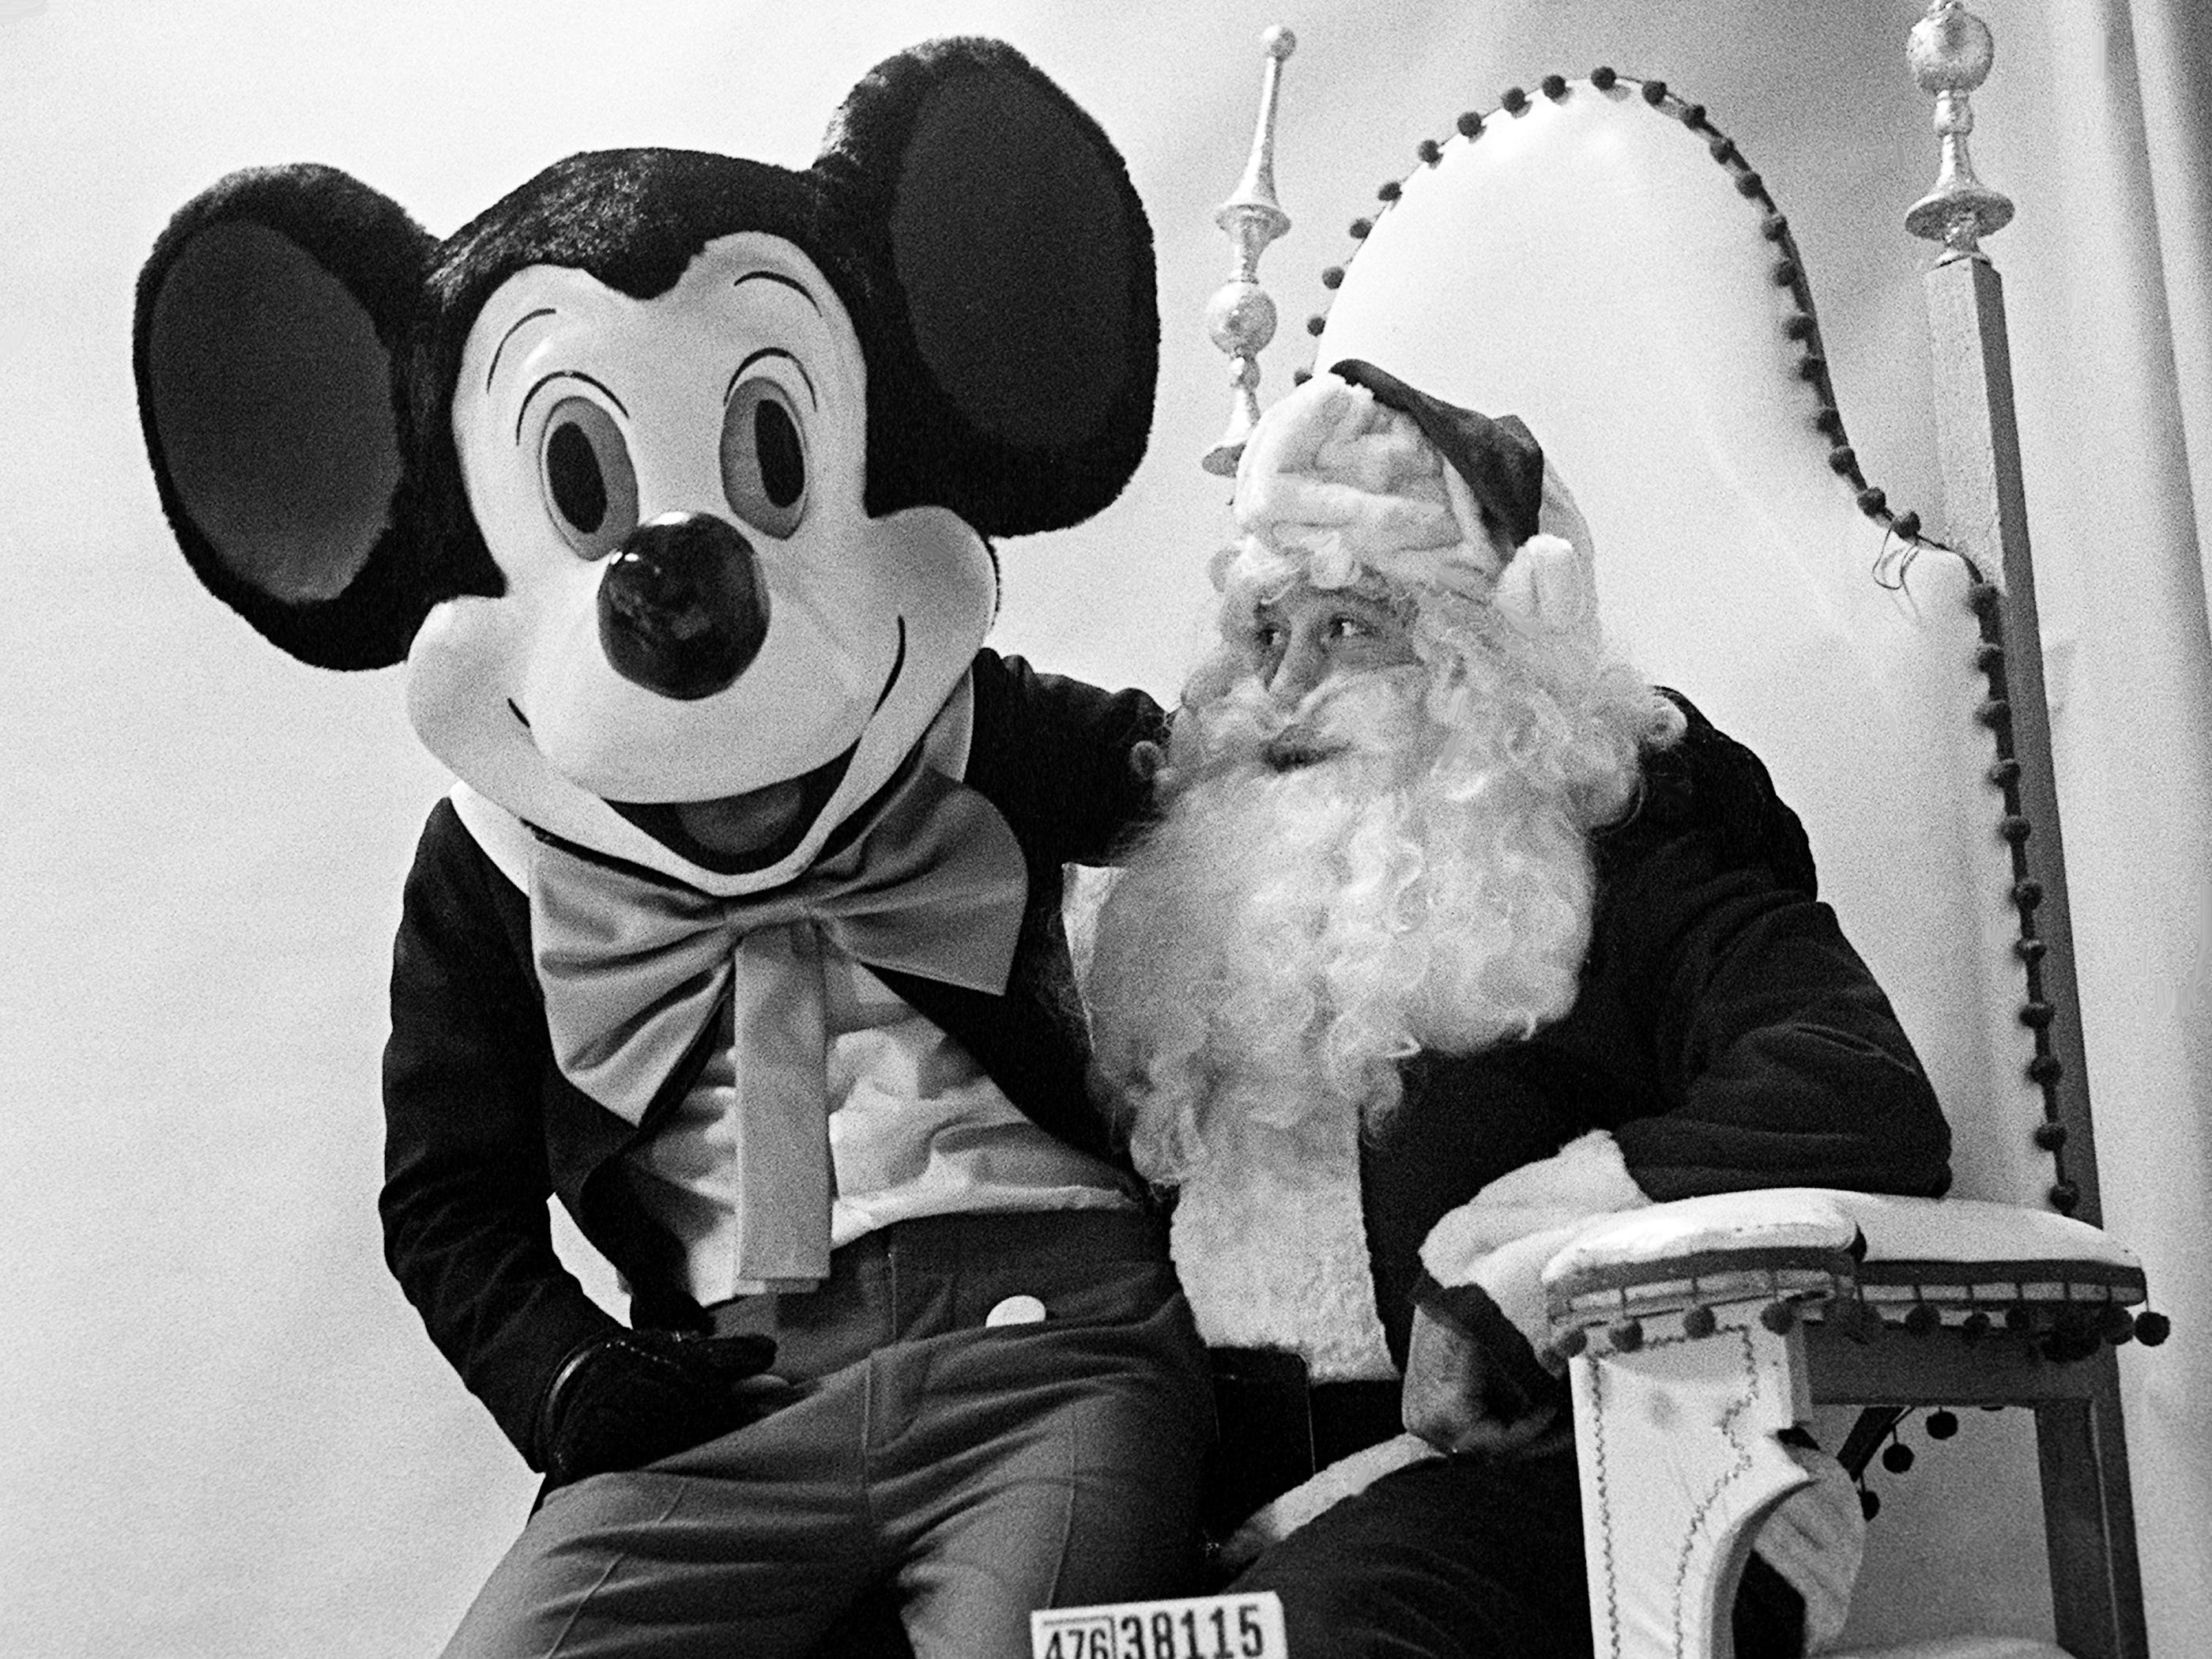 Mickey Mouse takes a break to let Santa know whats he want for Christmas at Harveys Dec. 16, 1968. The popular Disney cartoon character, along with Pluto, greet young and old shoppers each day in the store.